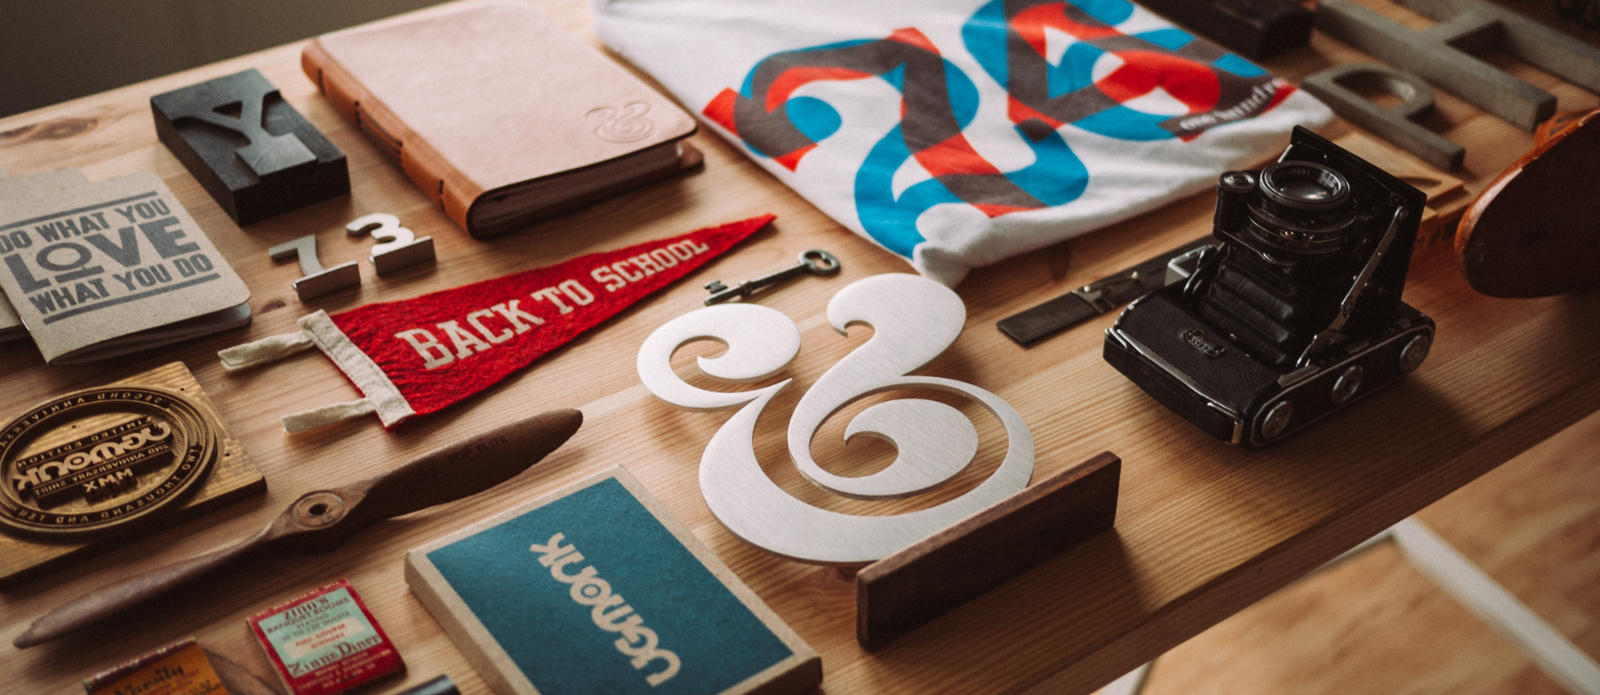 blogimg-side-types-of-typeface